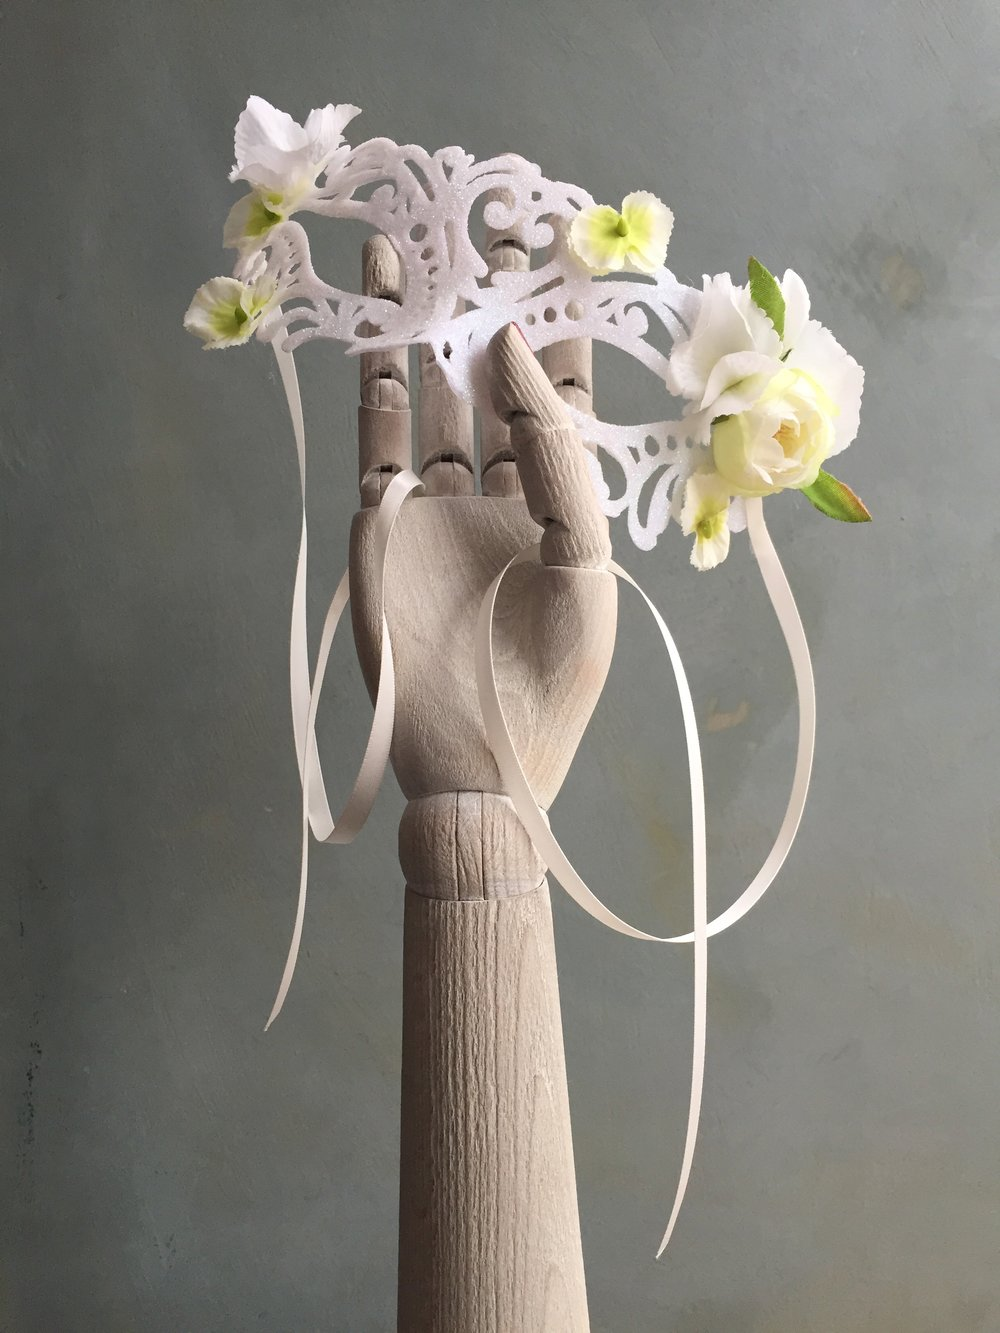 Mask with white flowers